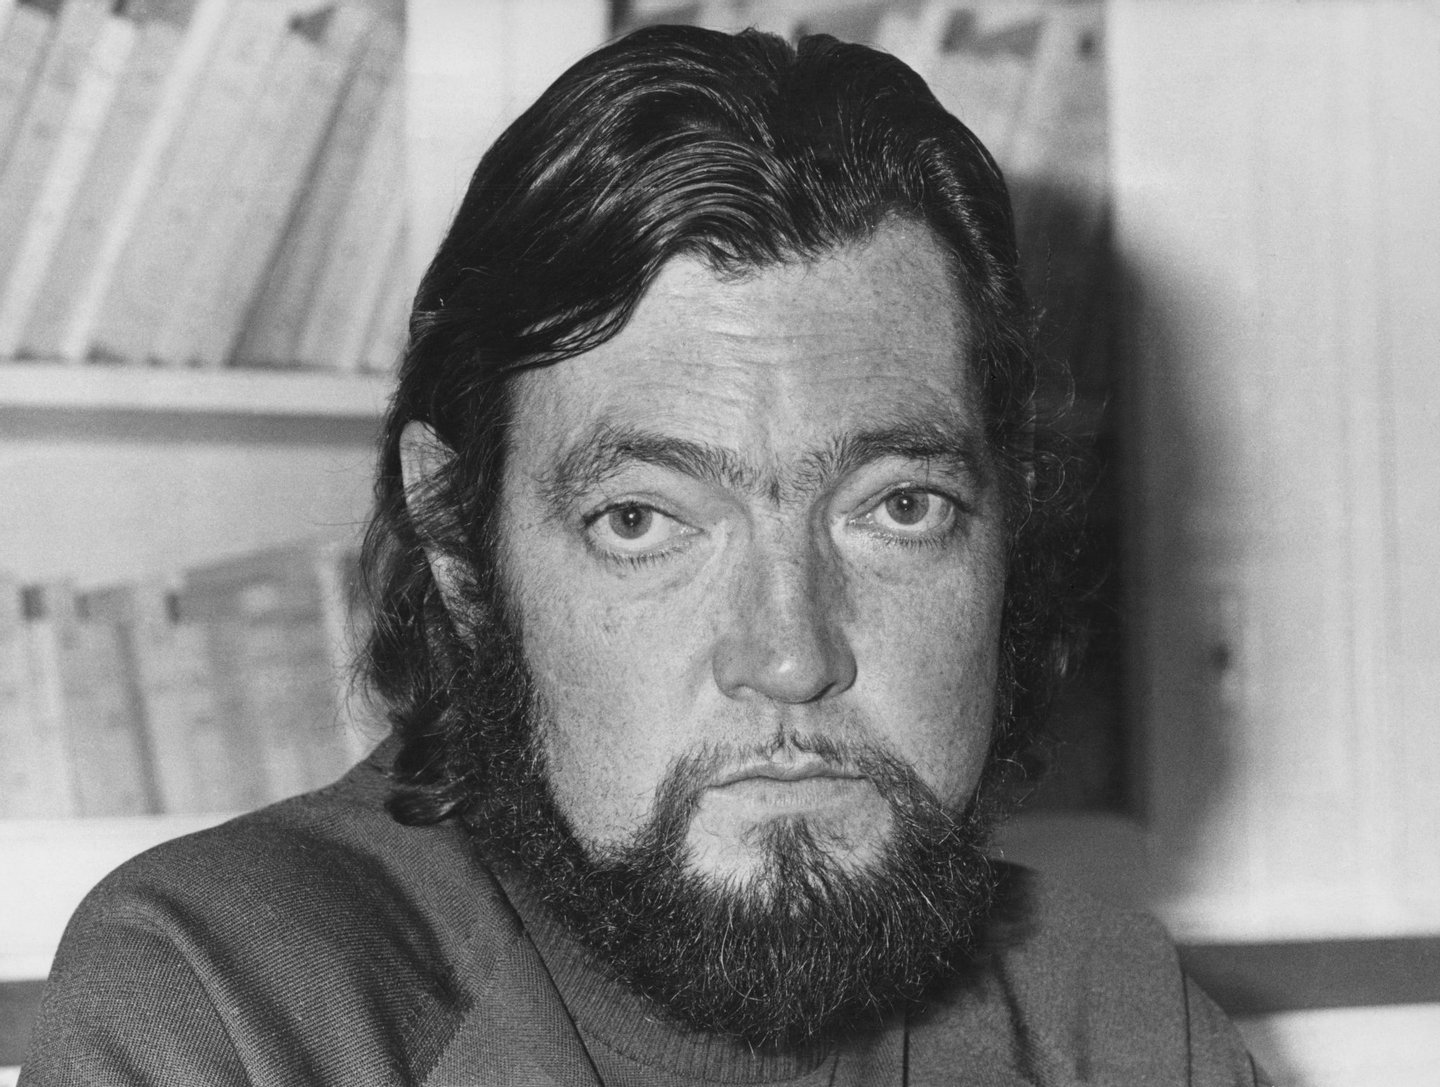 Argentine writer Julio Cortazar, circa 1974. (Photo by AFP/Pictorial Parade/Getty Images)